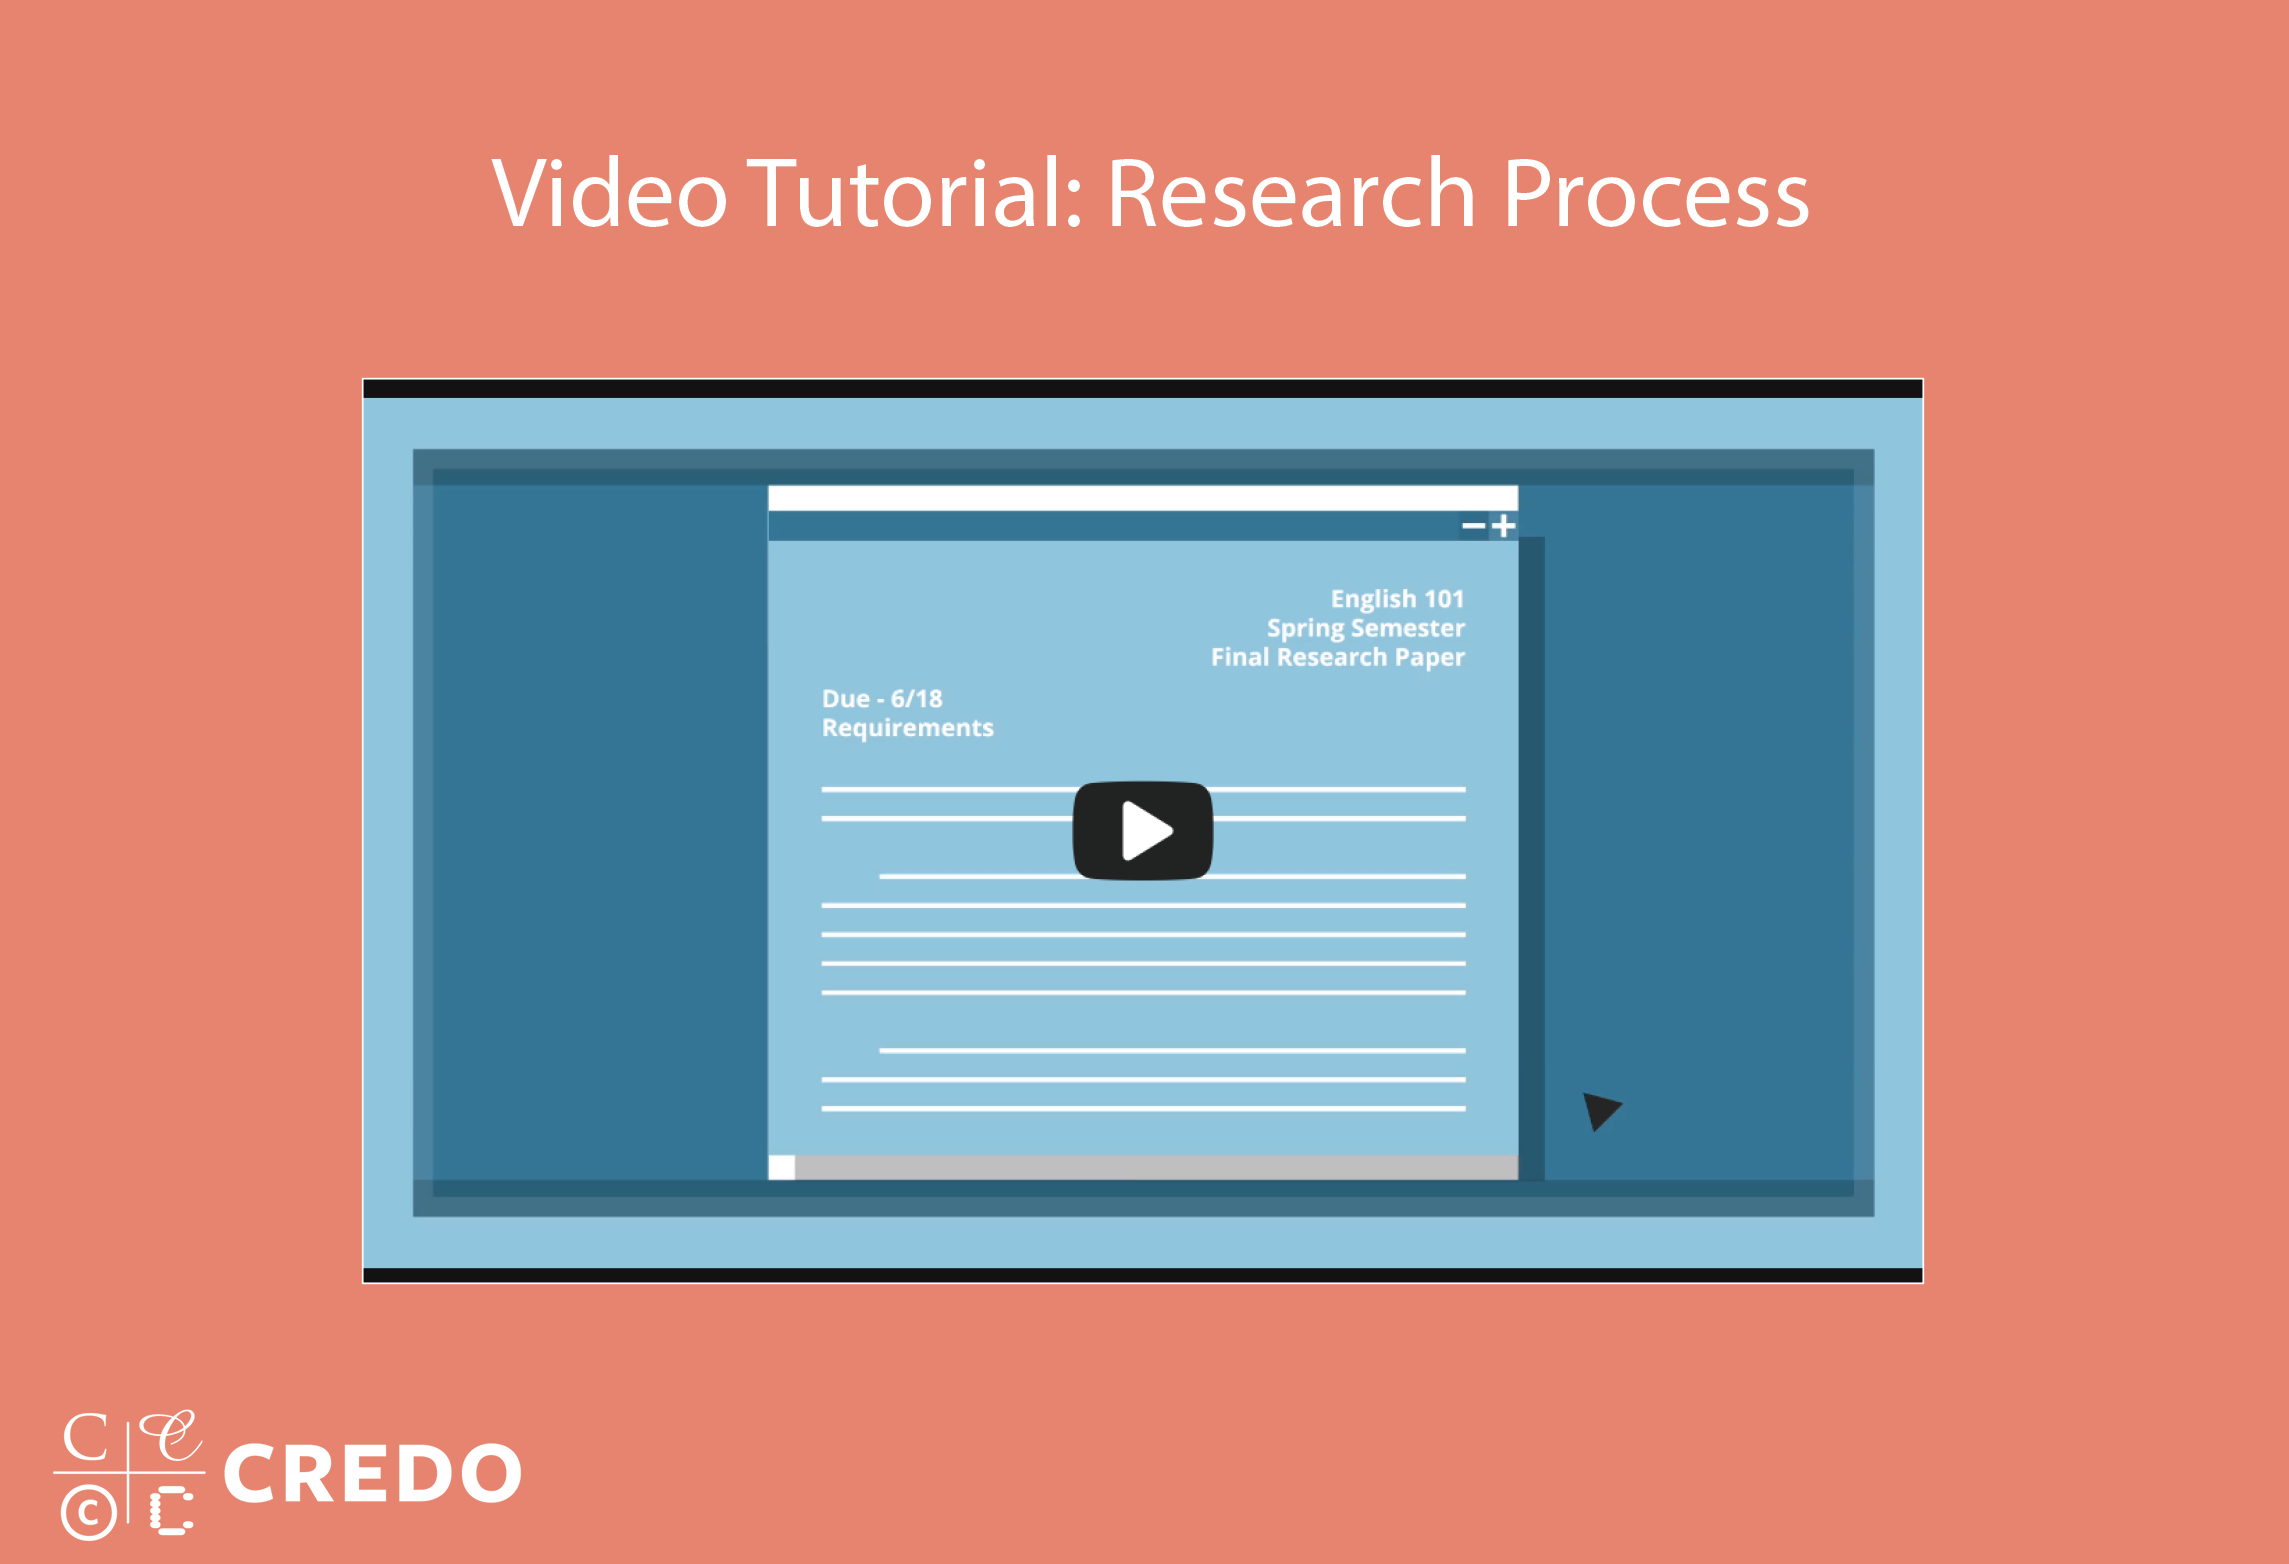 Video Tutorial: The Research Process